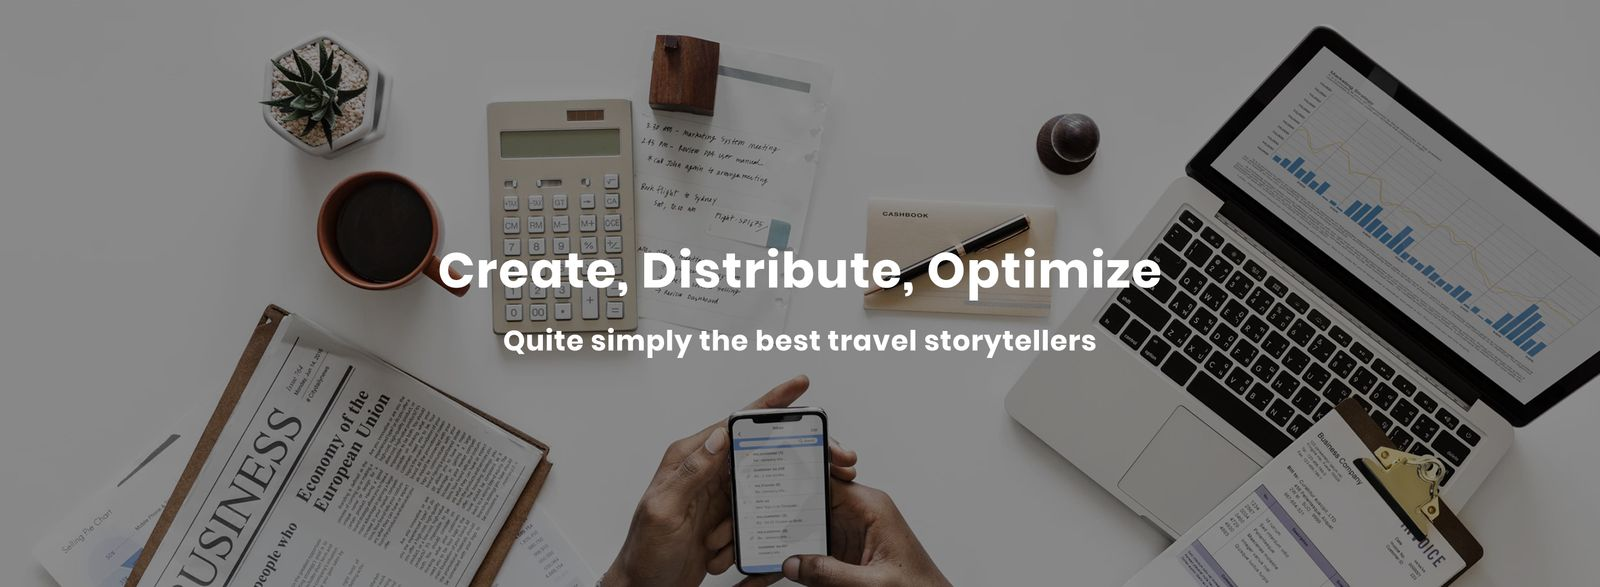 tripzilla-create-distribute-optimize